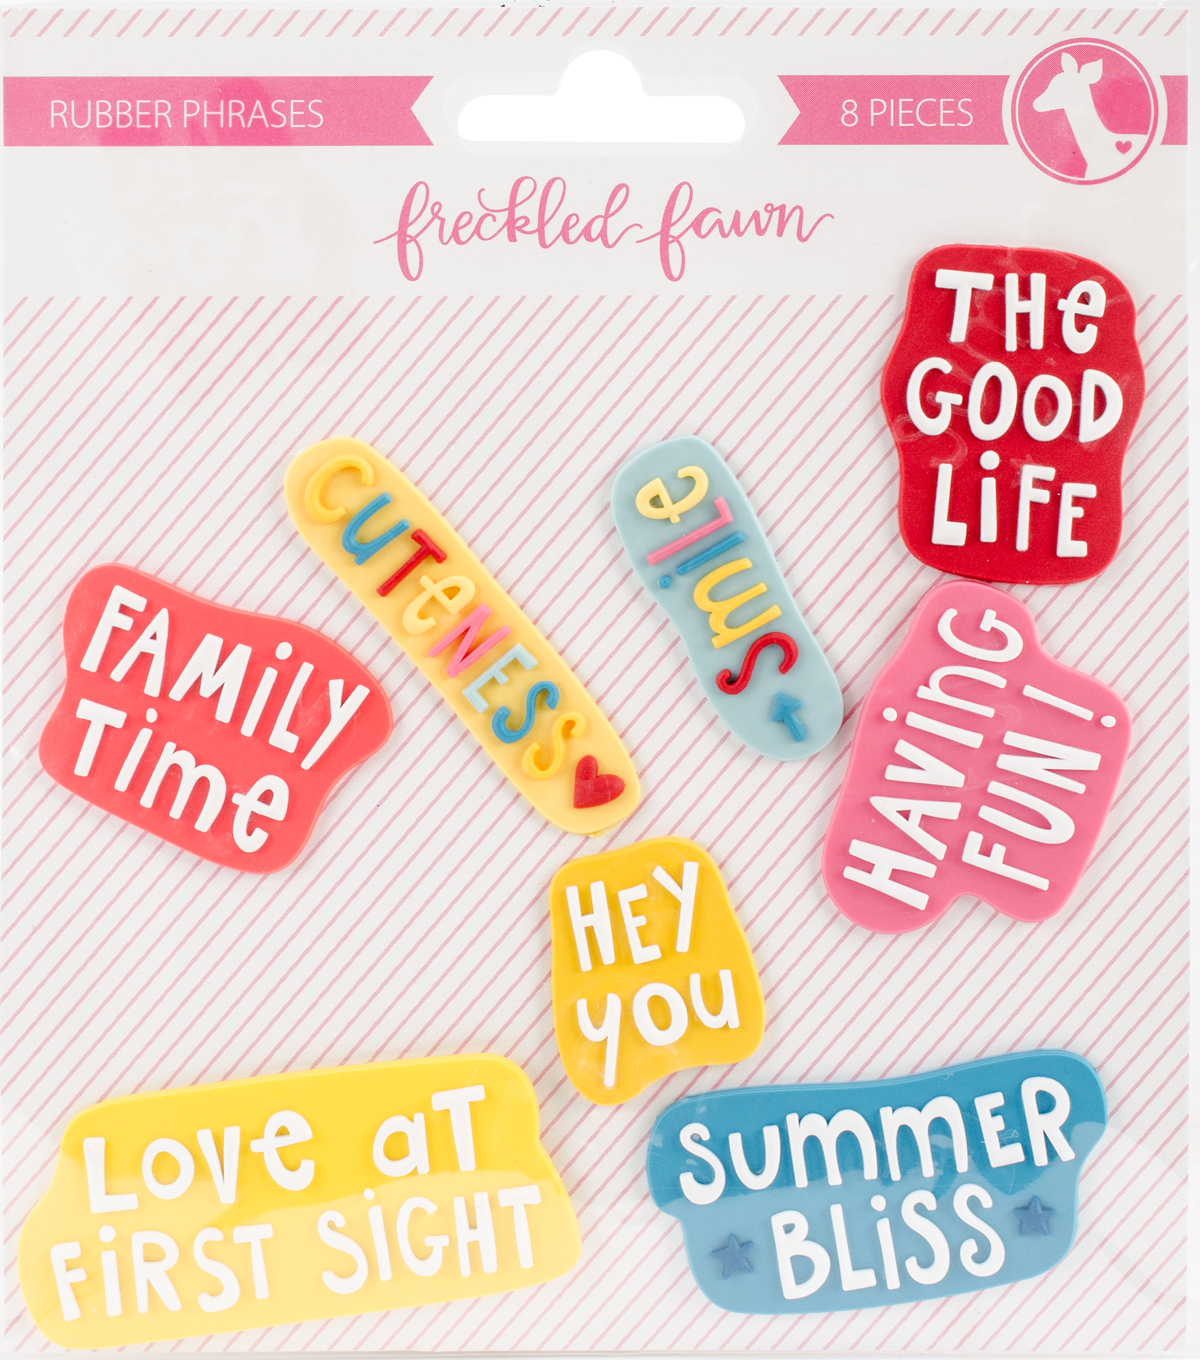 Freckled Fawn 8 pk Rubber Shapes-Doodle Phrase